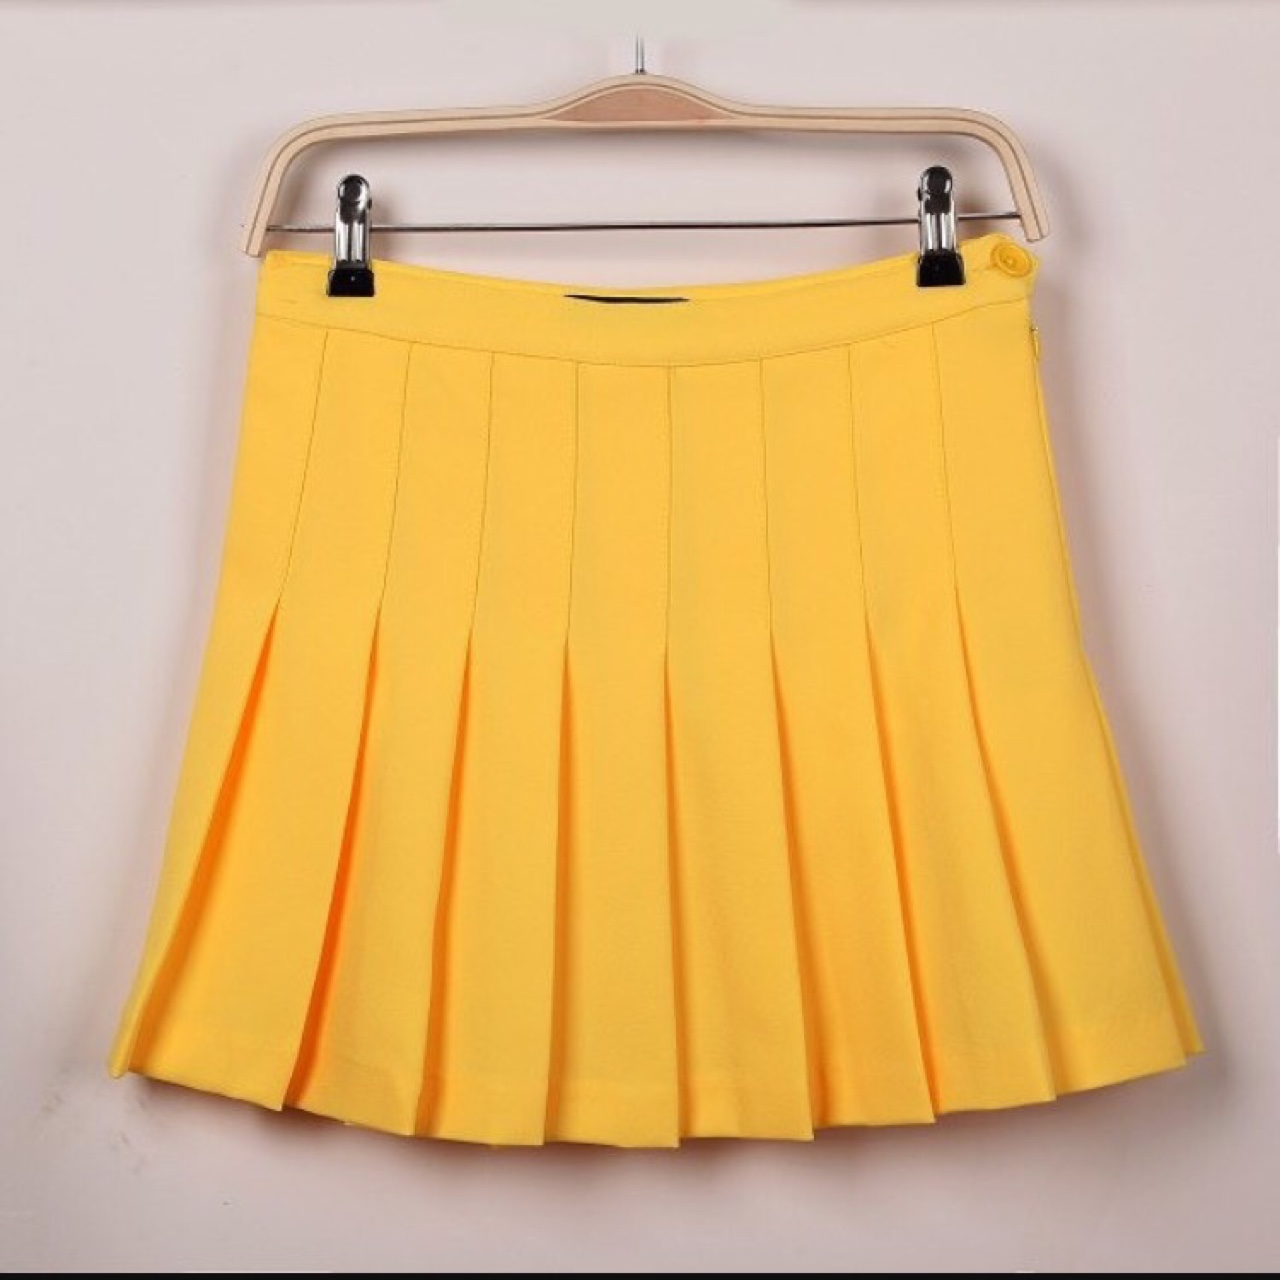 ae04e275ae97 American apparel yellow tennis skirt, perfect condition size - Depop